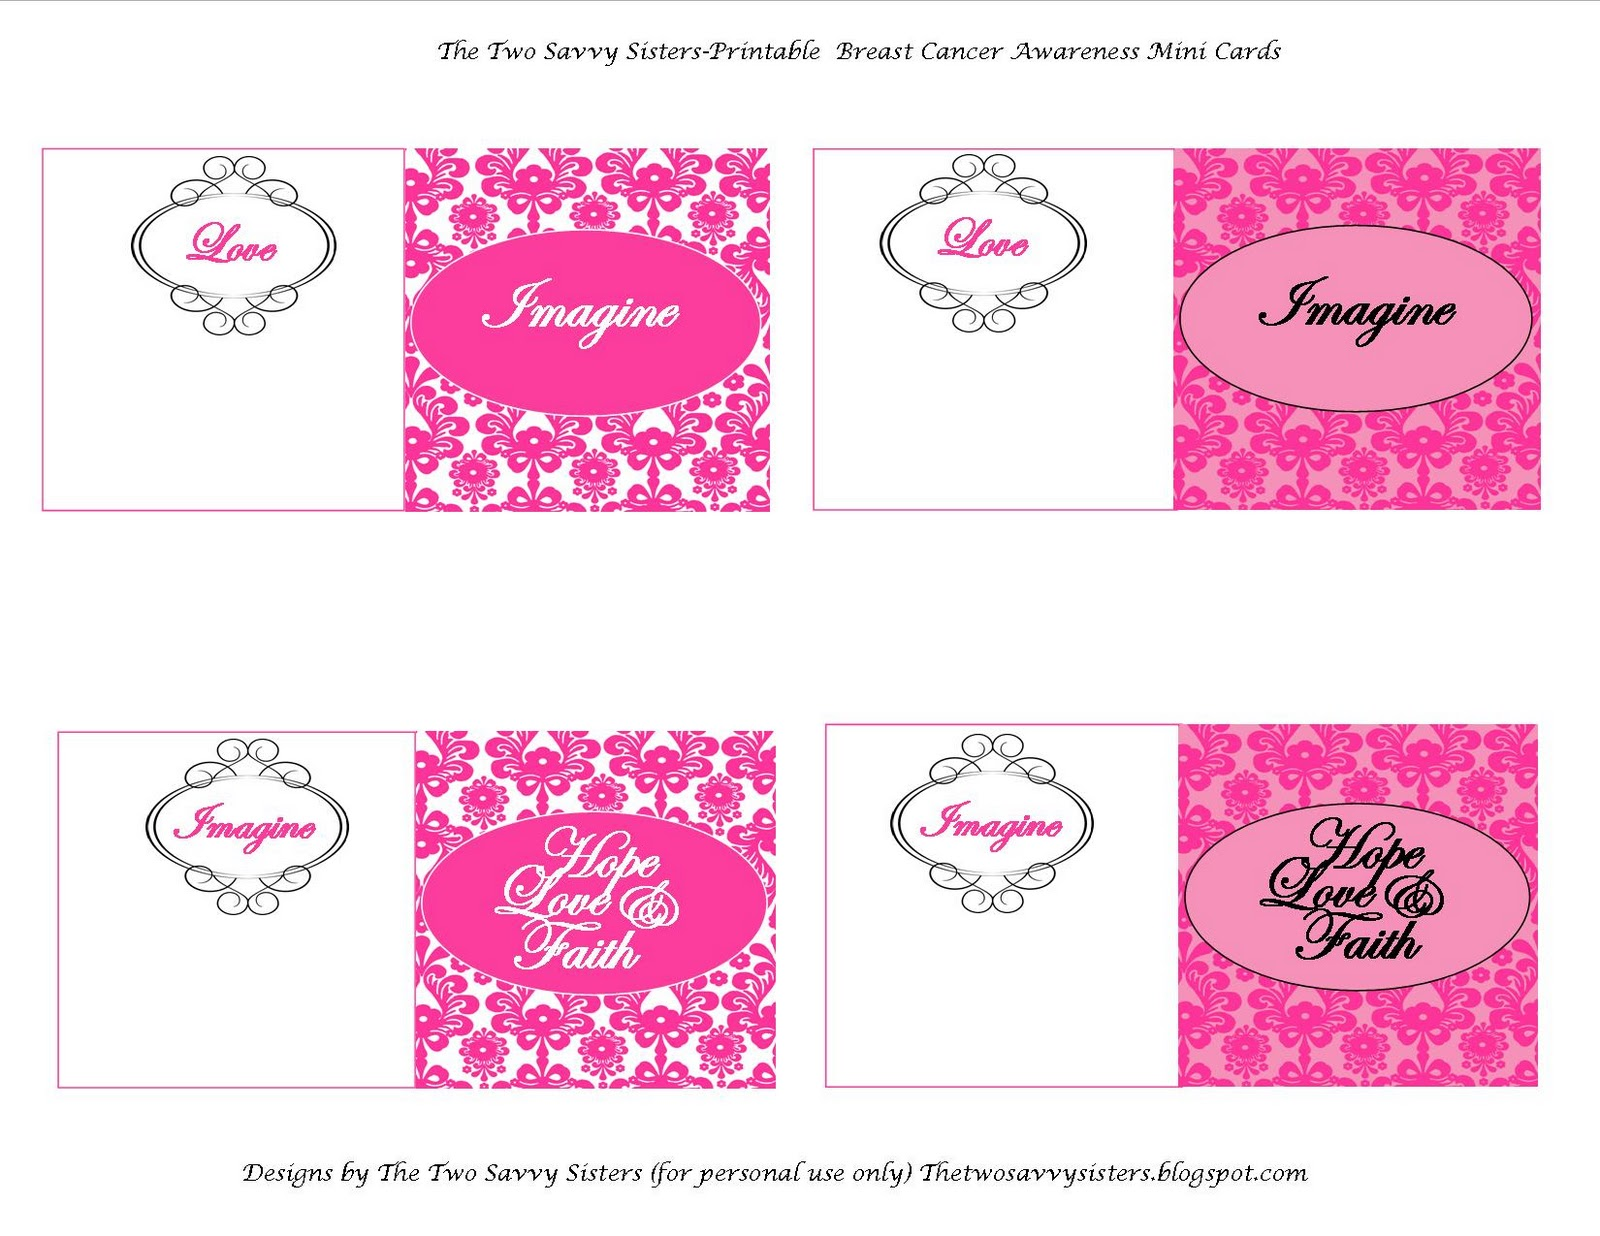 Breast Cancer Cards Printable http://thetwosavvysisters.blogspot.com/2010/10/pink-for-monthcupcake-recipe-and.html